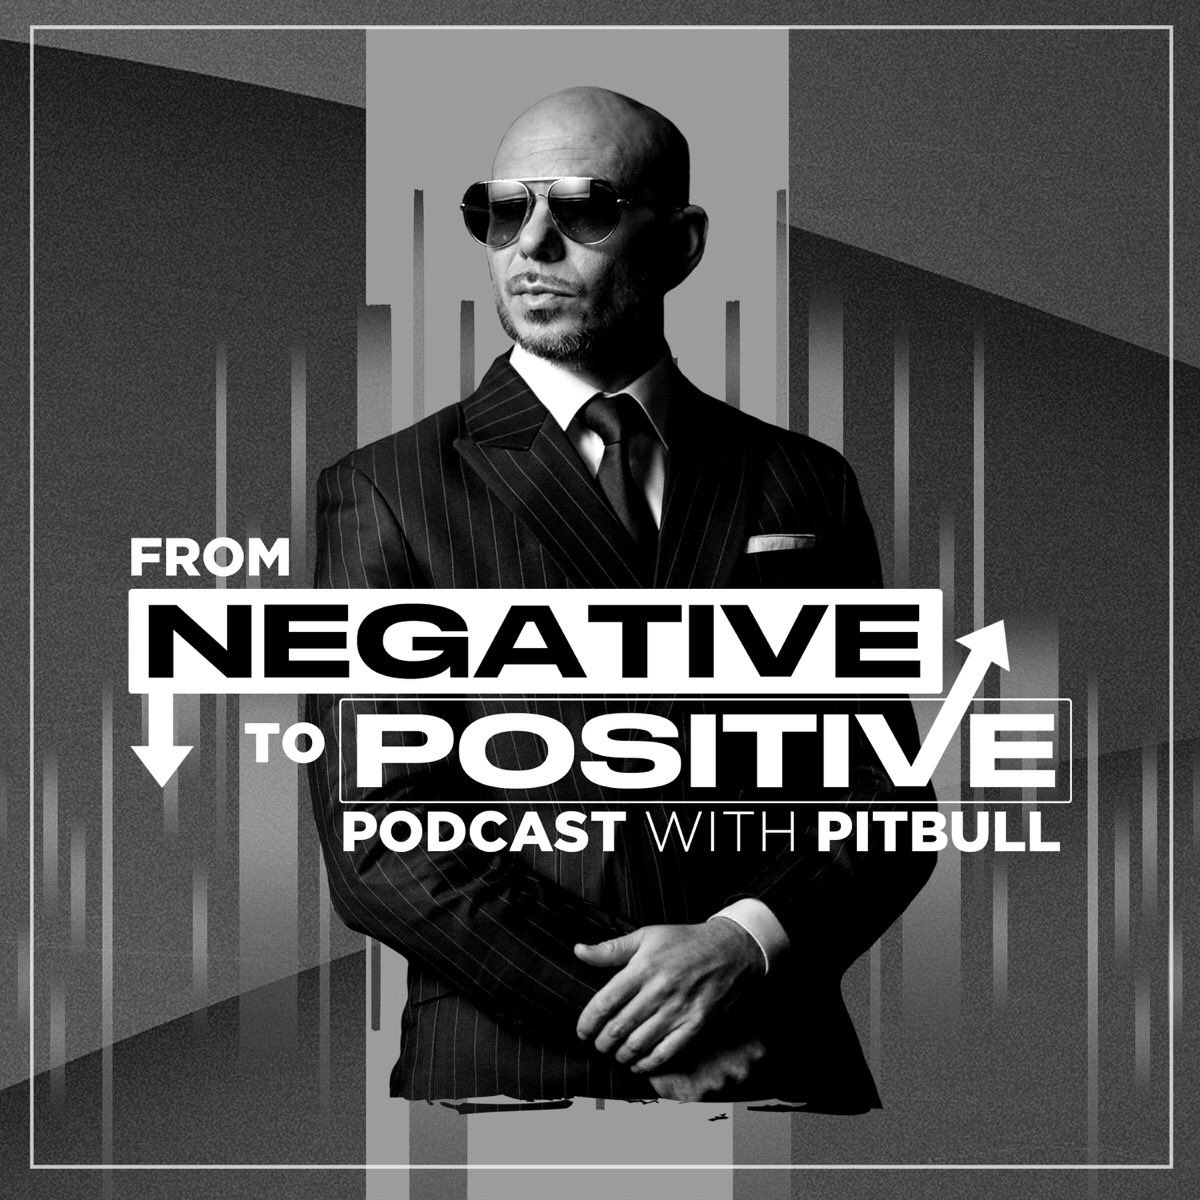 "#NEWS The brand new @Pitbull's Podcast ""From Negative to Positive"" featuring @GilGreen305 is OUT NOW! #FromNegativeToPositive #MrWorldwide #Pitbull ⠀⠀⠀⠀⠀⠀⠀⠀⠀ Listen to it here:"